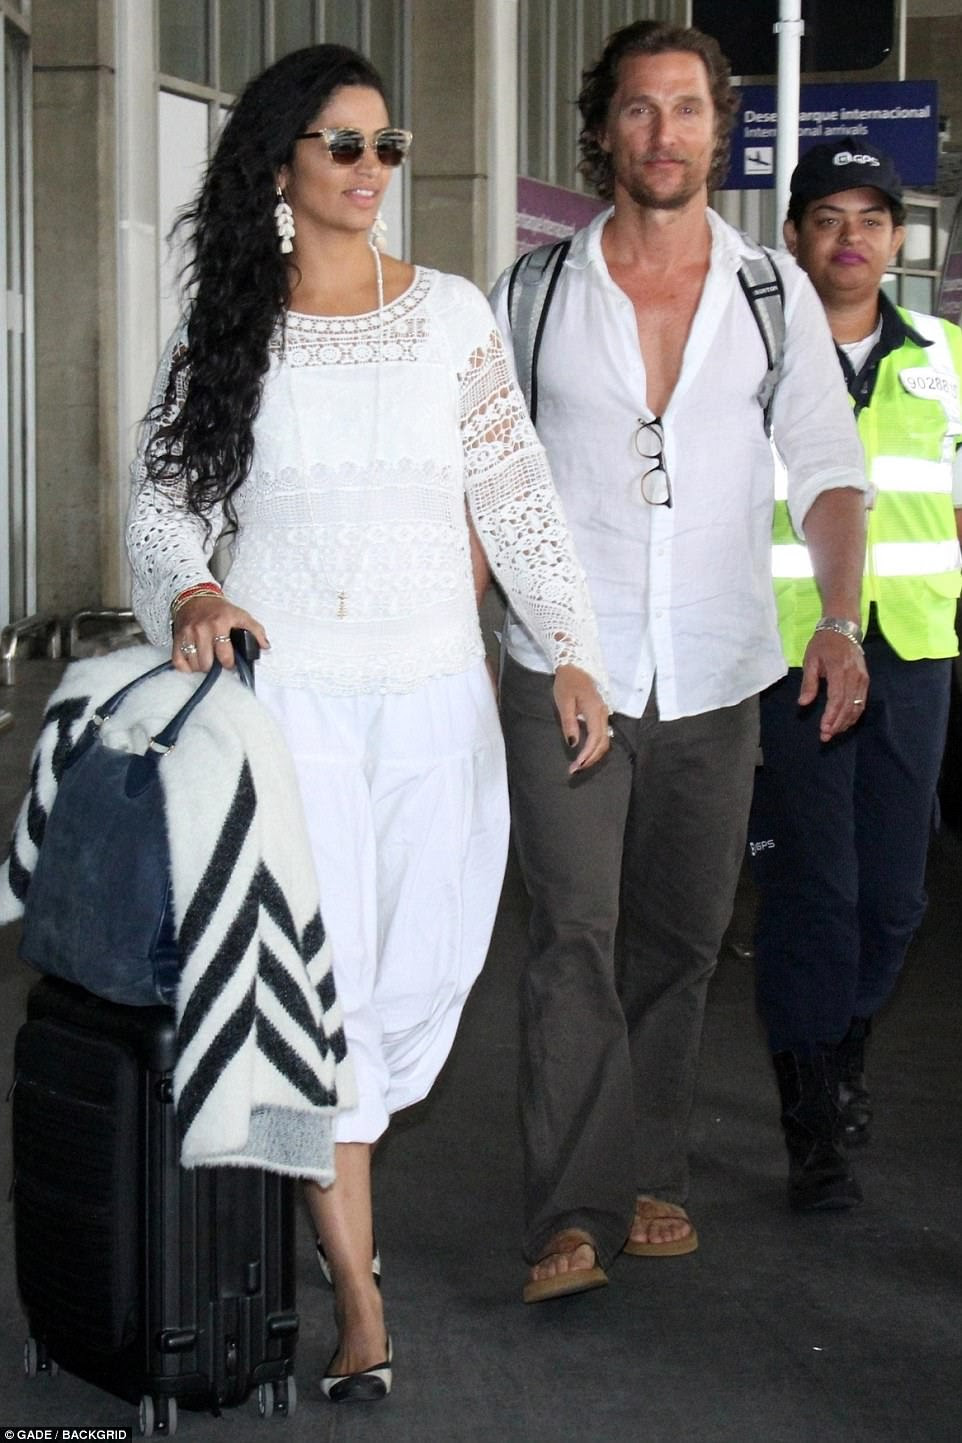 Jet-set couple: The actor and his wife Camila Alves were wearing white linen ensembles as they arrived at Rio de Janerio Airport earlier in the day